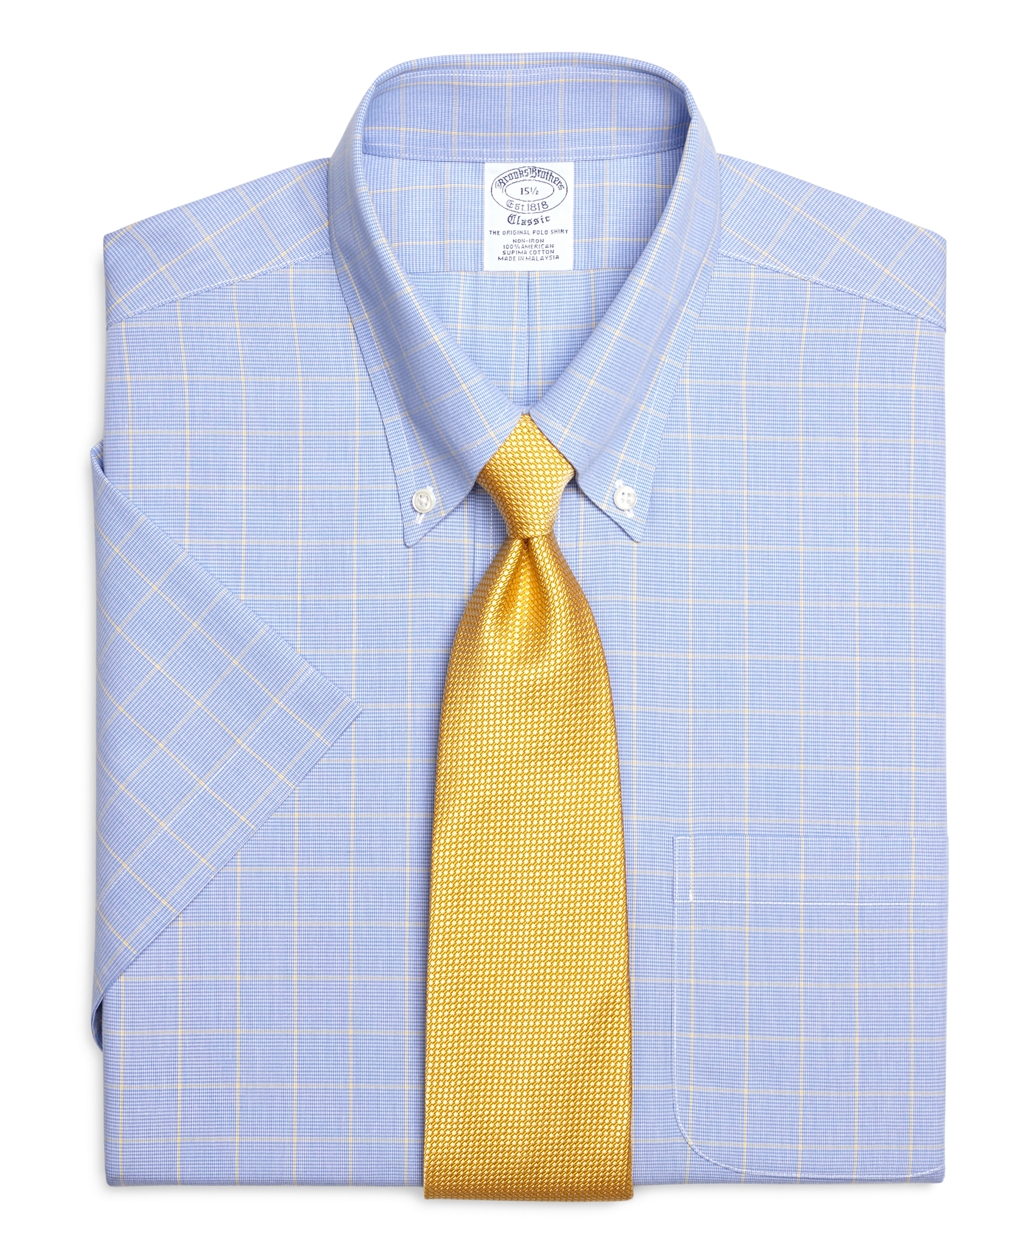 Lyst brooks brothers non iron regent fit short sleeve for Brooks brothers dress shirt fit